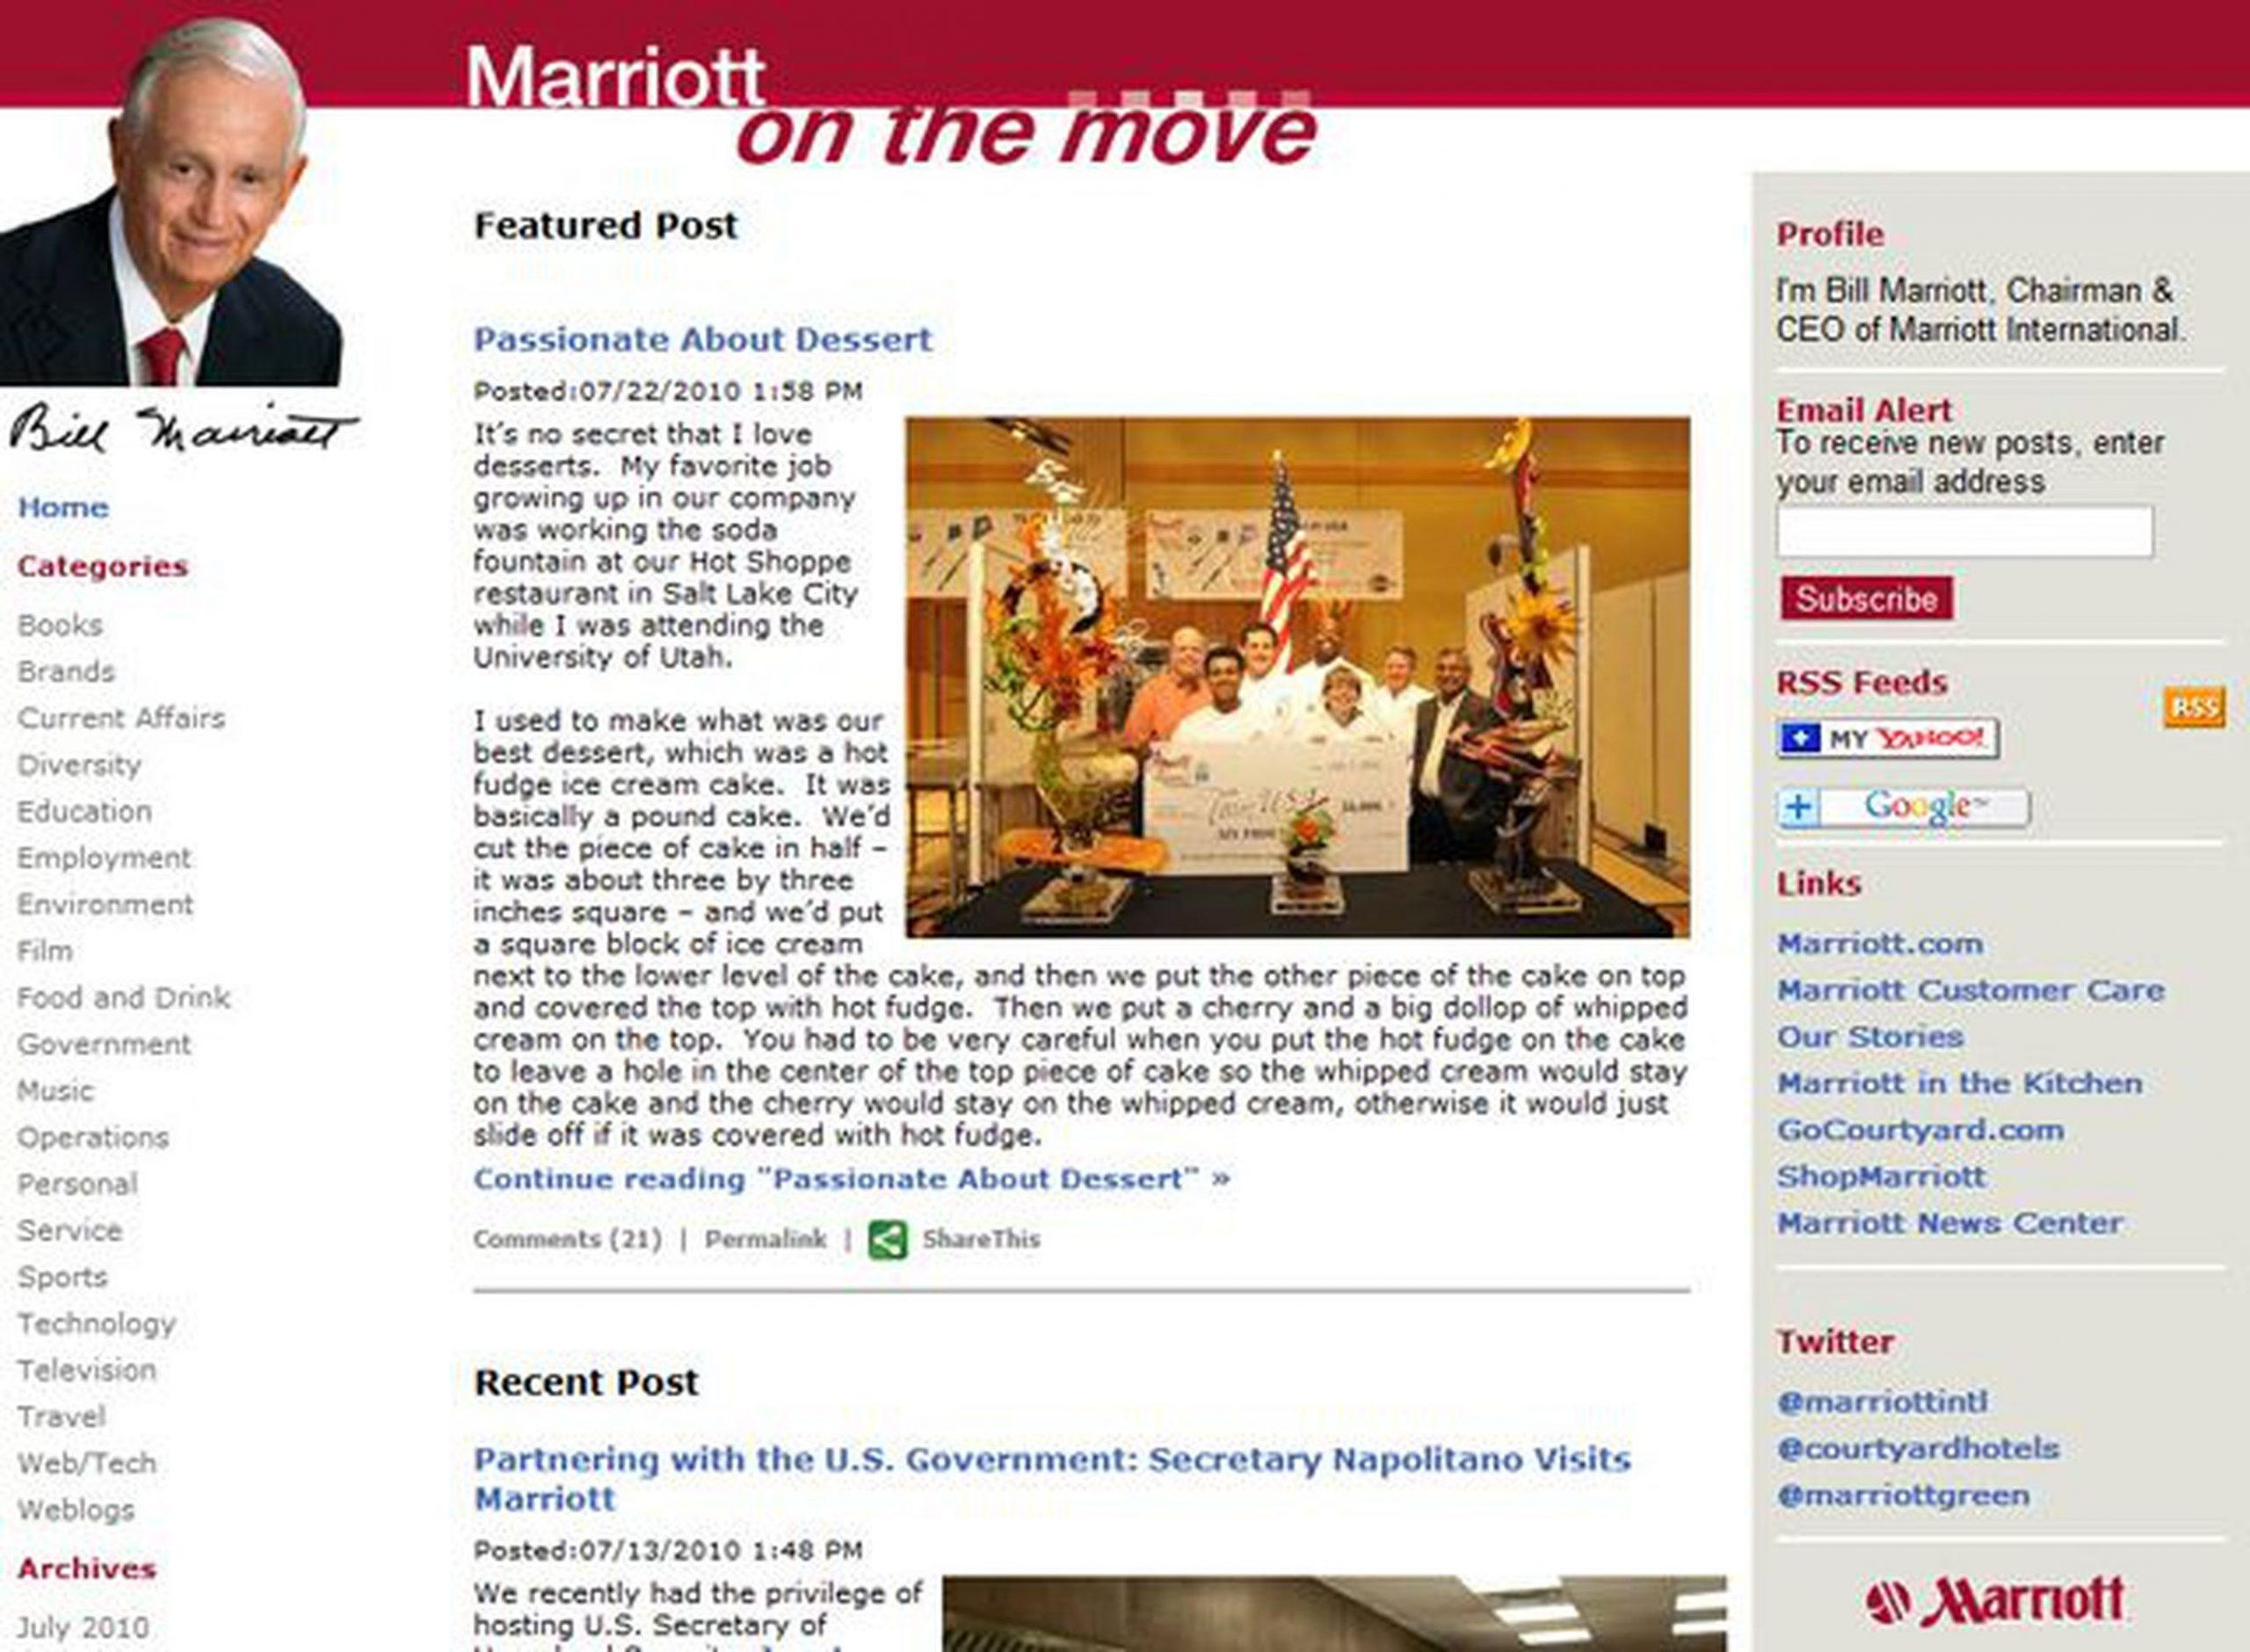 Marriott On the Move: Put Your Leader in Charge